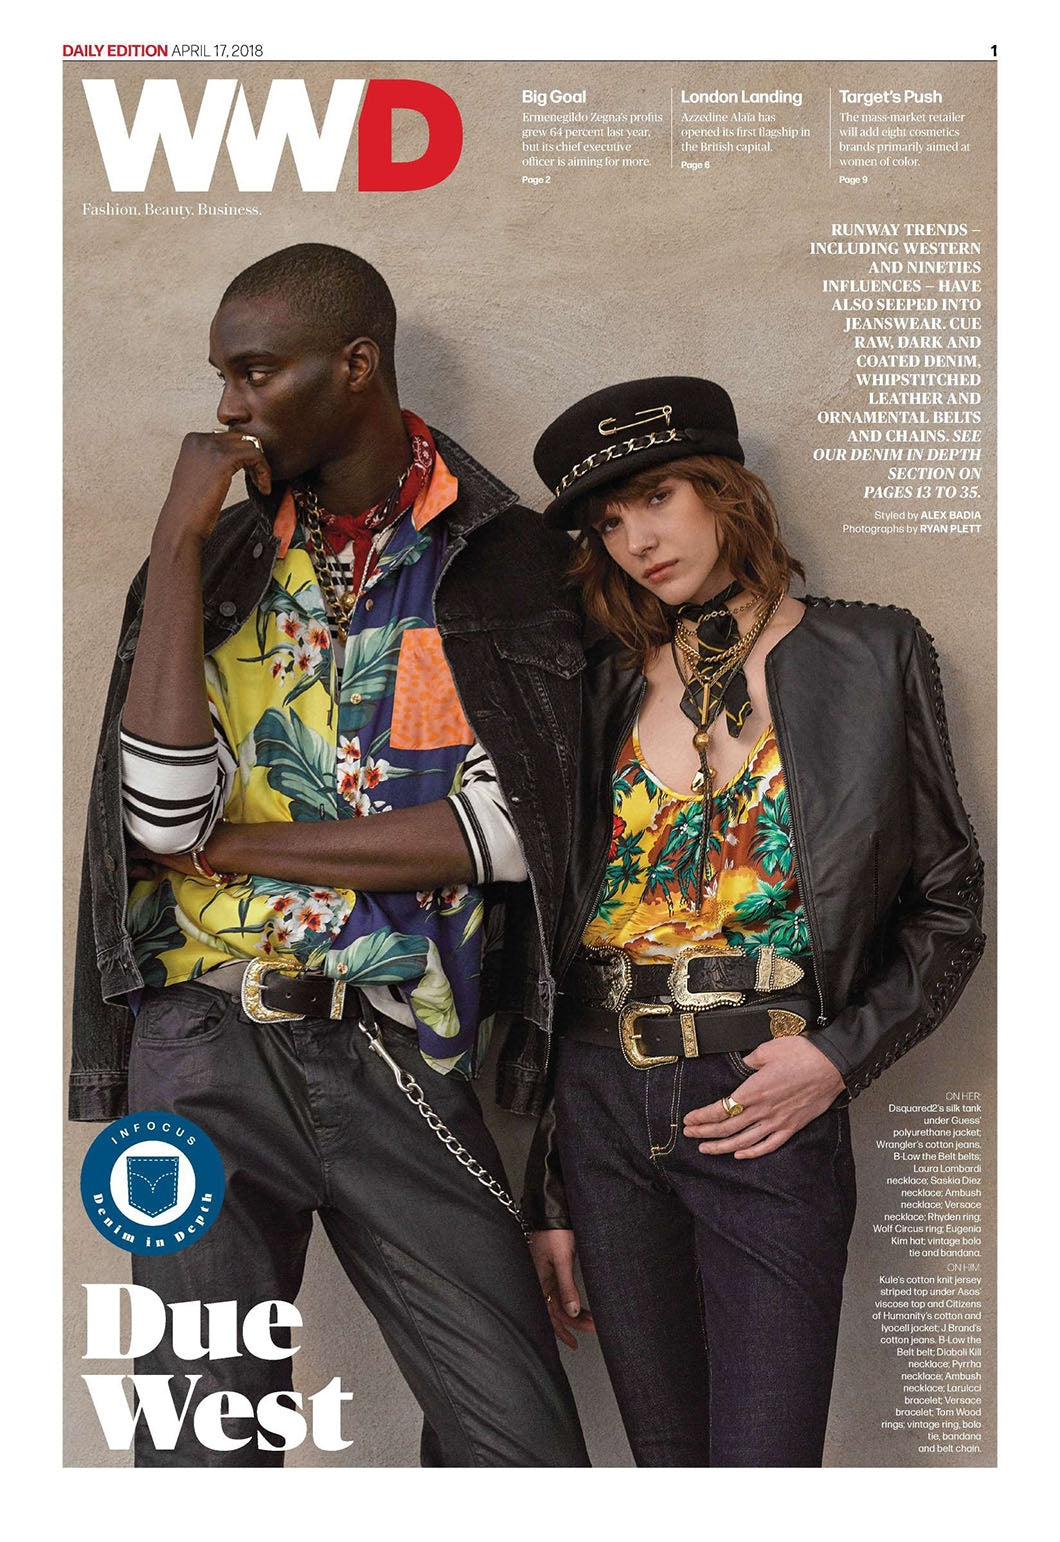 Classic Jacket in Black Birch featured in WWD